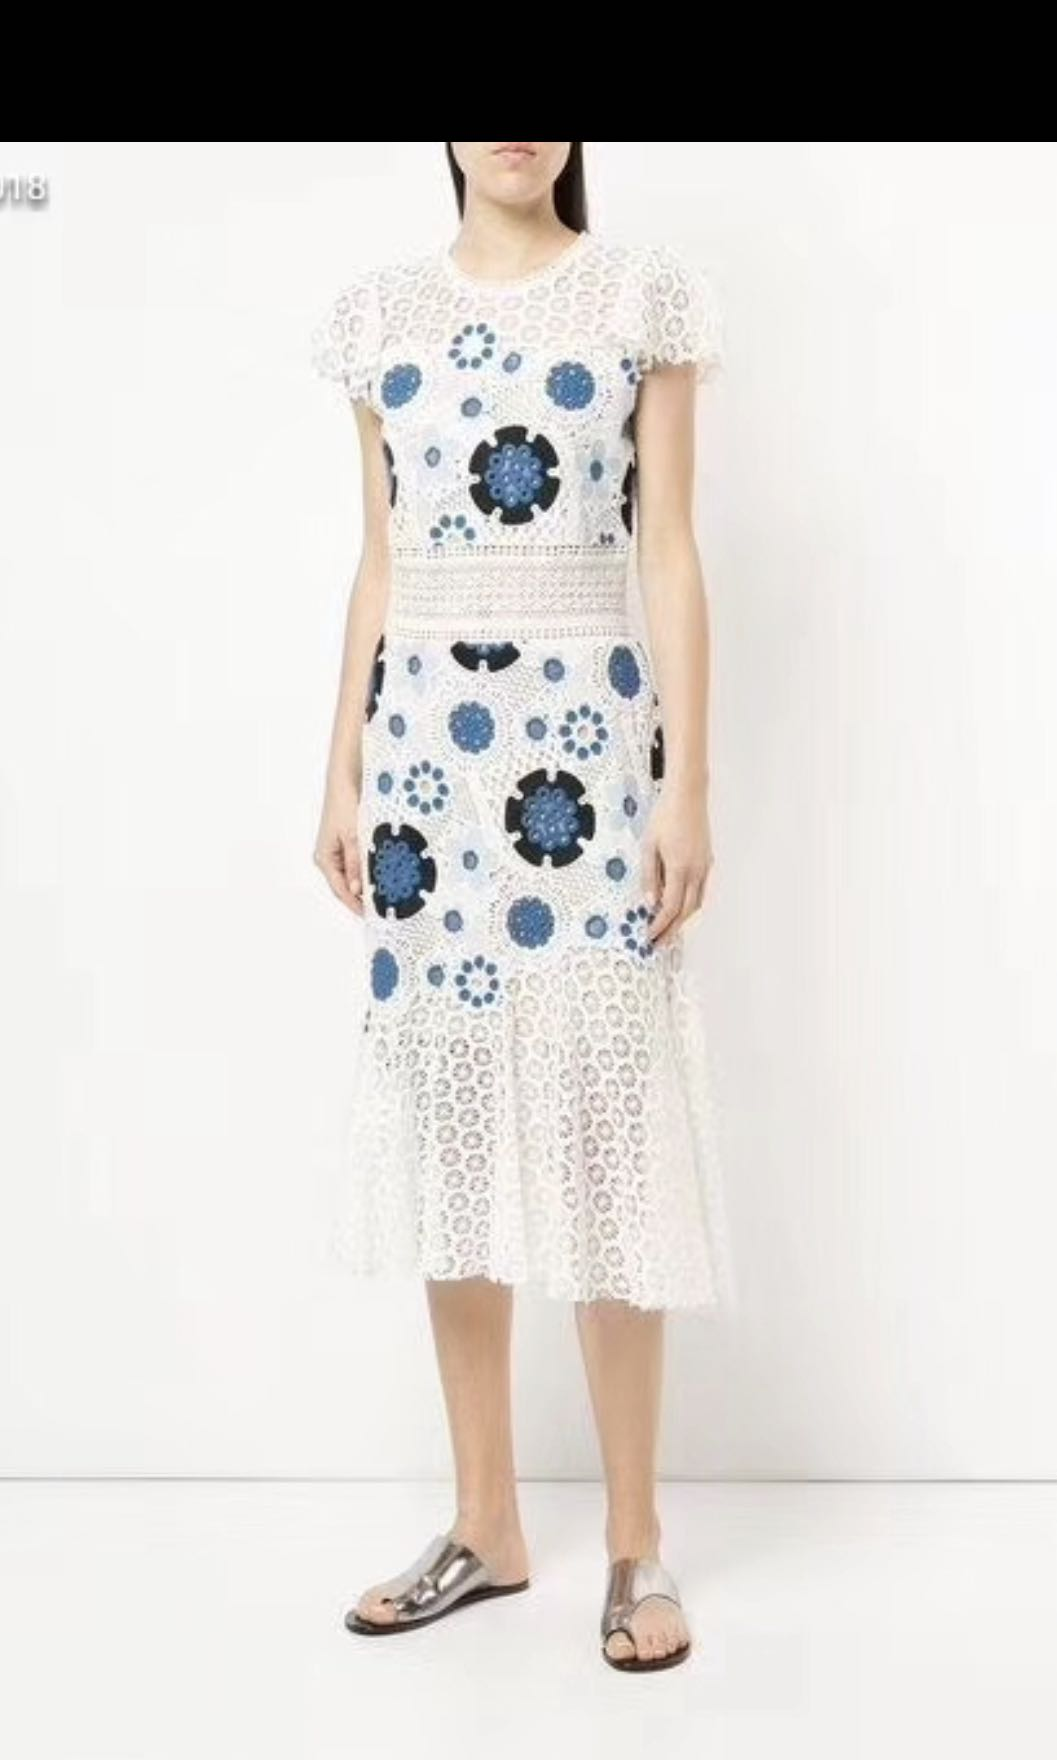 Bnwt Authentic Cotton Lace Dress By Sea New York Women S Fashion Clothes Dresses Skirts On Carou